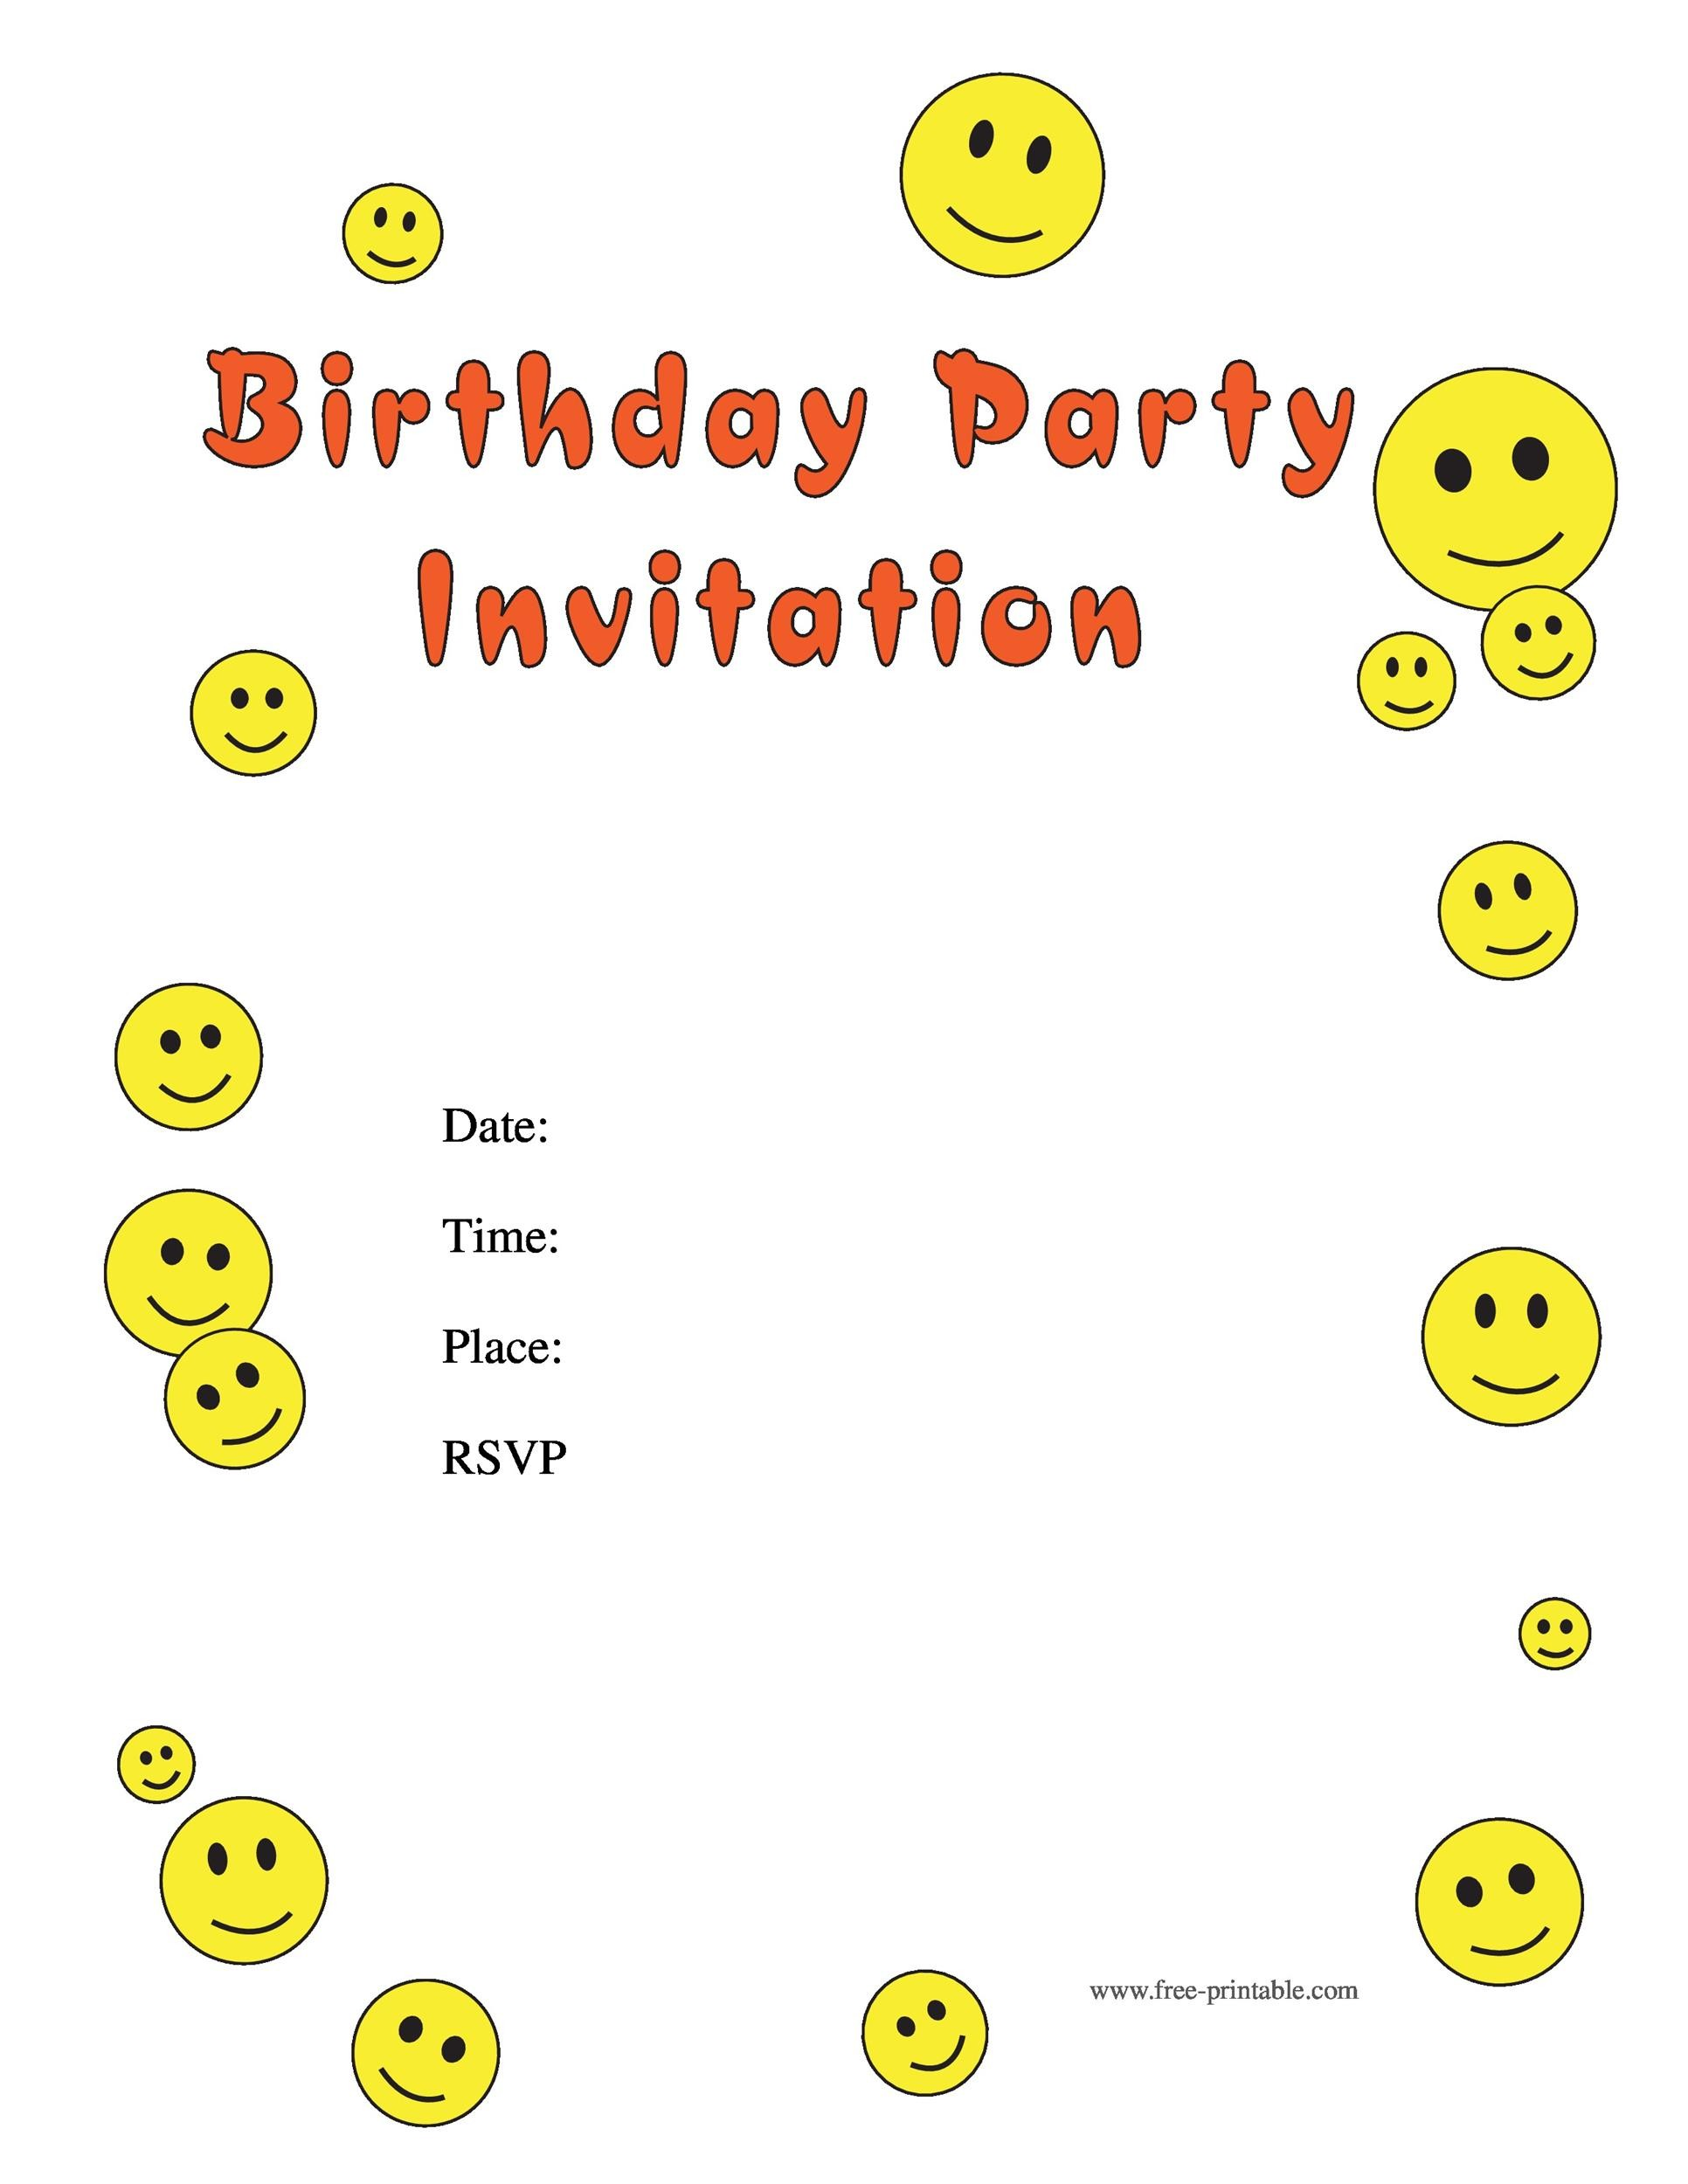 40 free birthday party invitation templates template lab printable birthday invitation template 27 filmwisefo Image collections